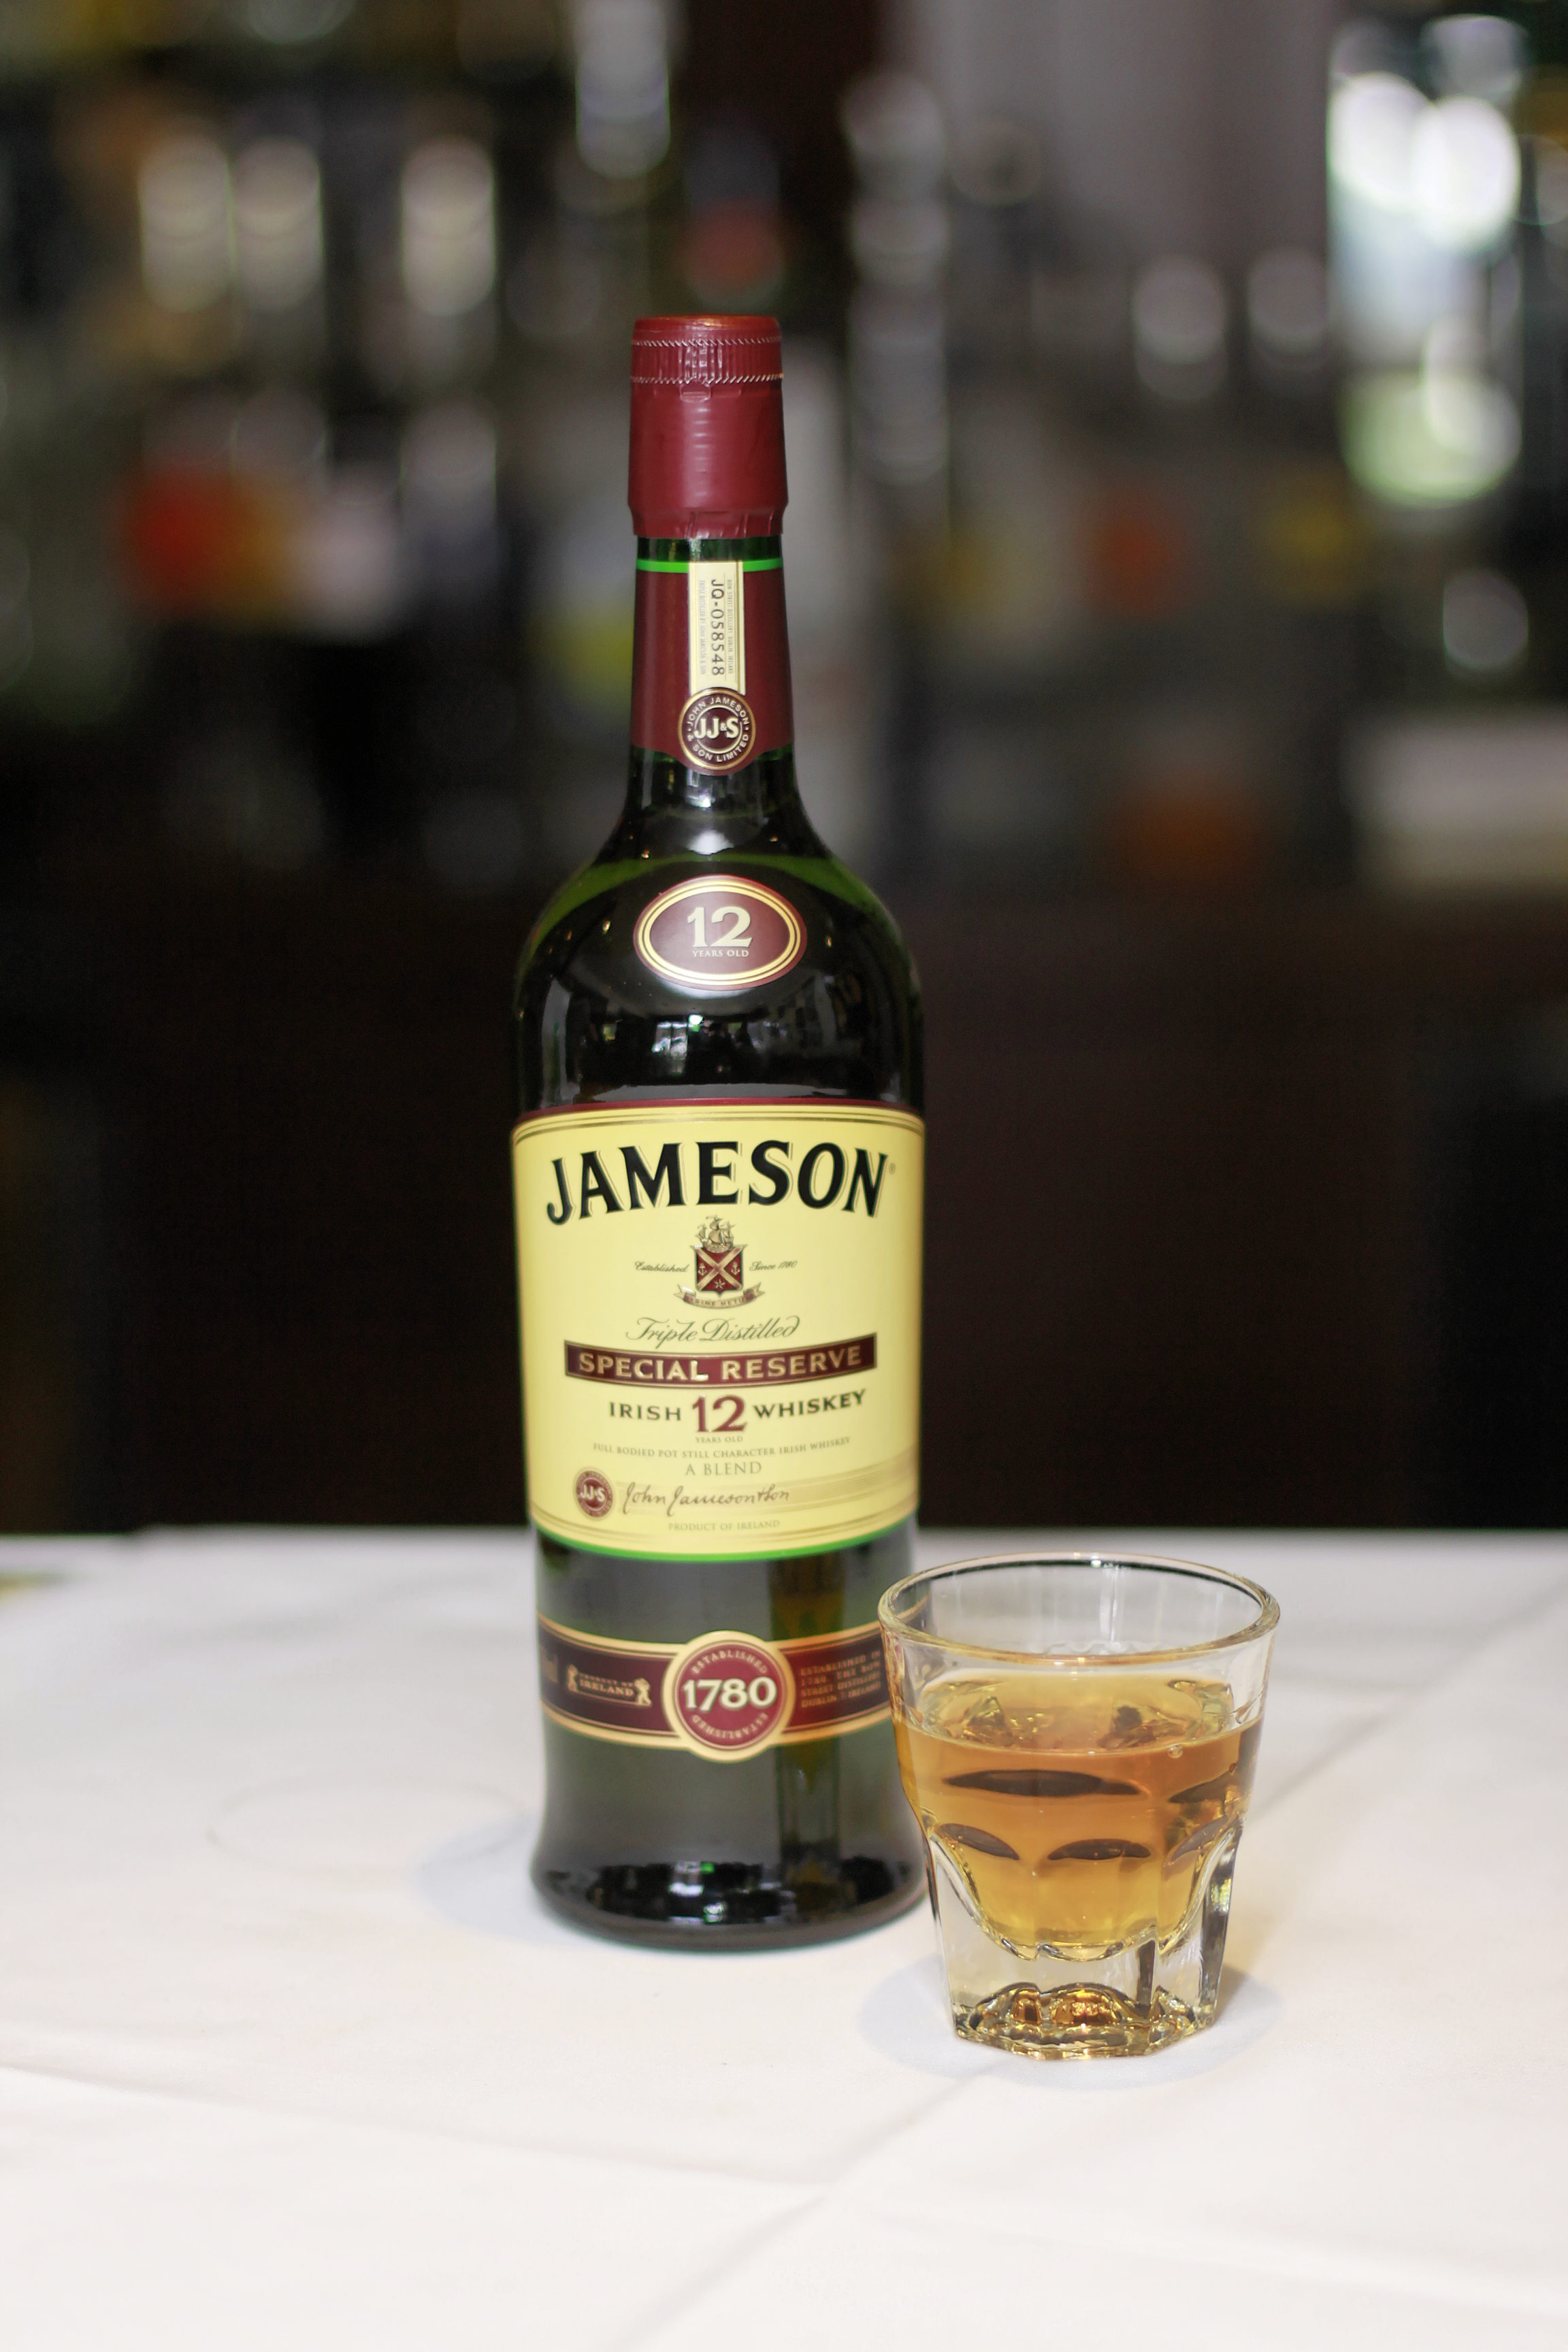 A bottle of Jameson at Crogan's